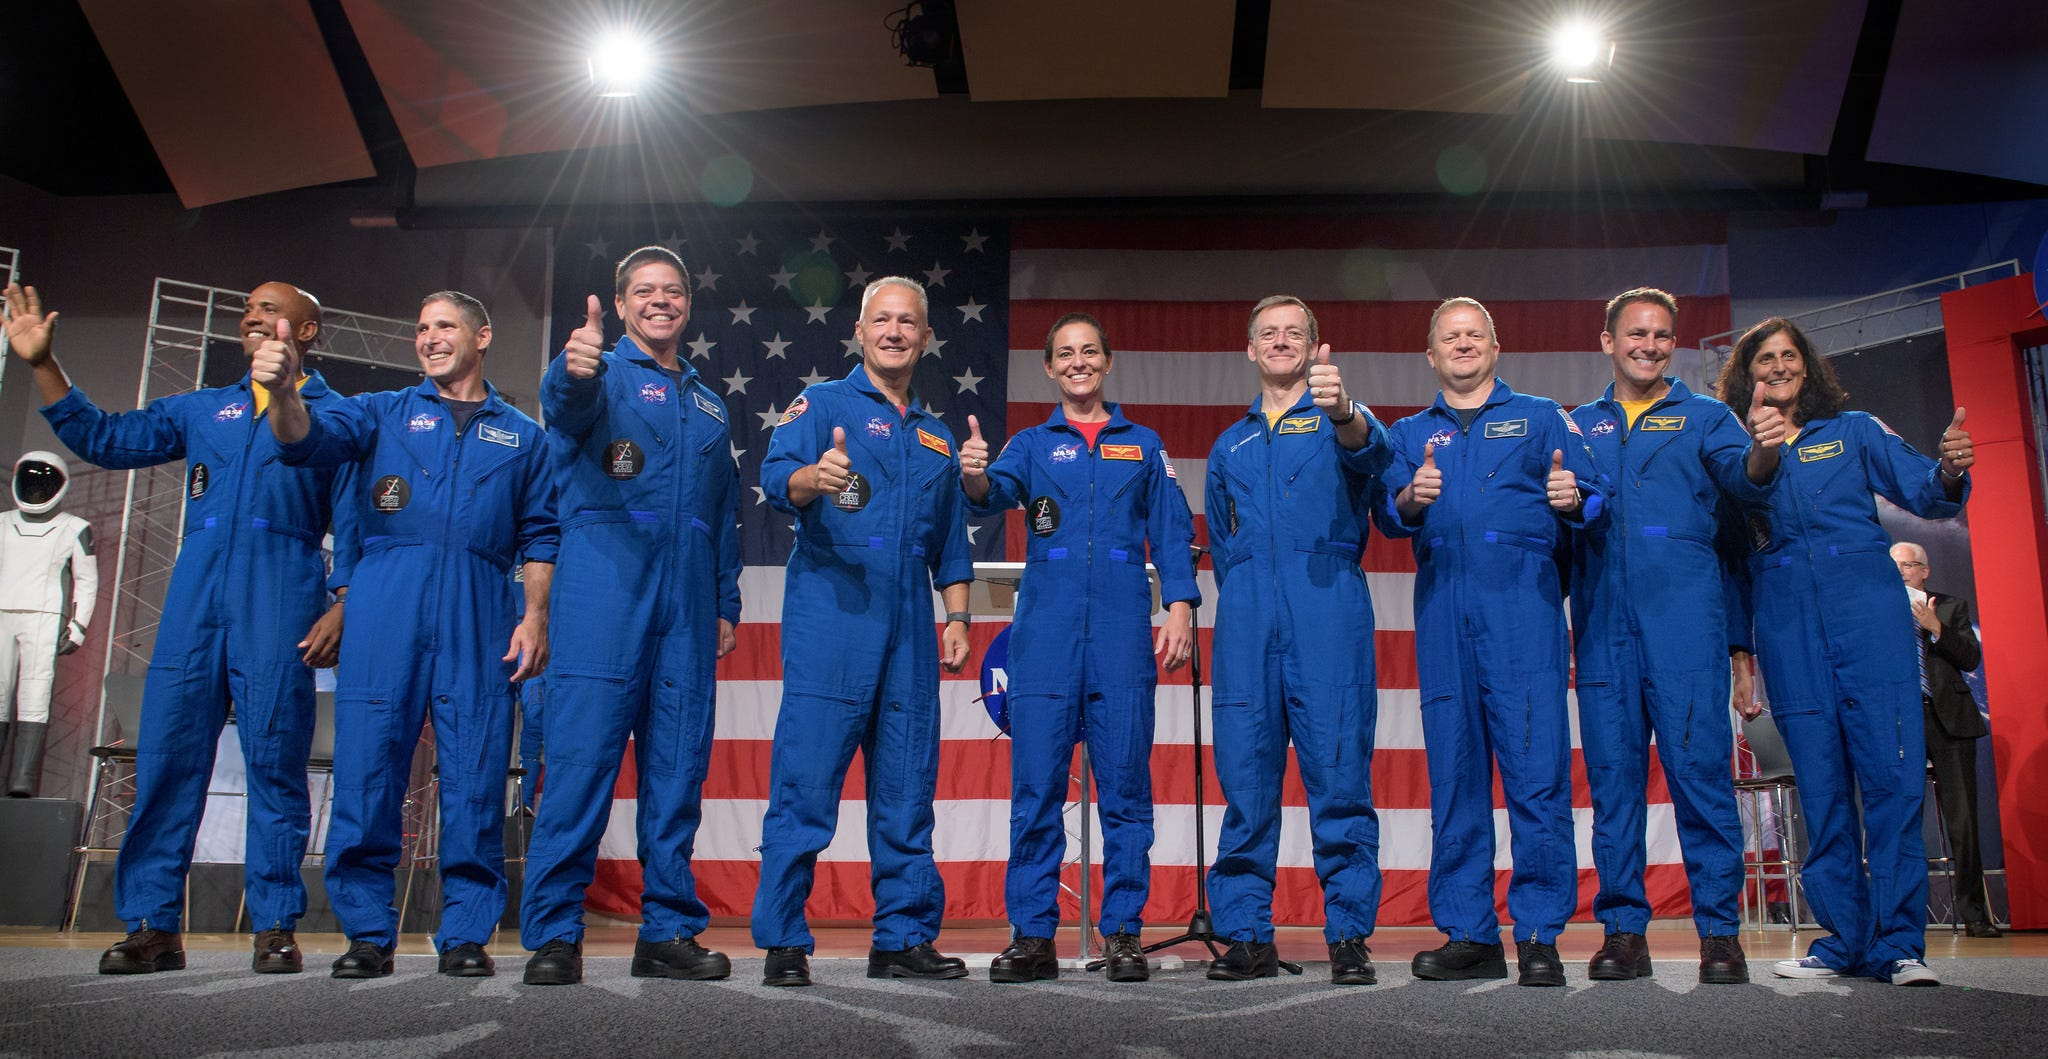 Meet the nine astronauts who will be the first to fly on commercial SpaceX and Boeing spacecraft